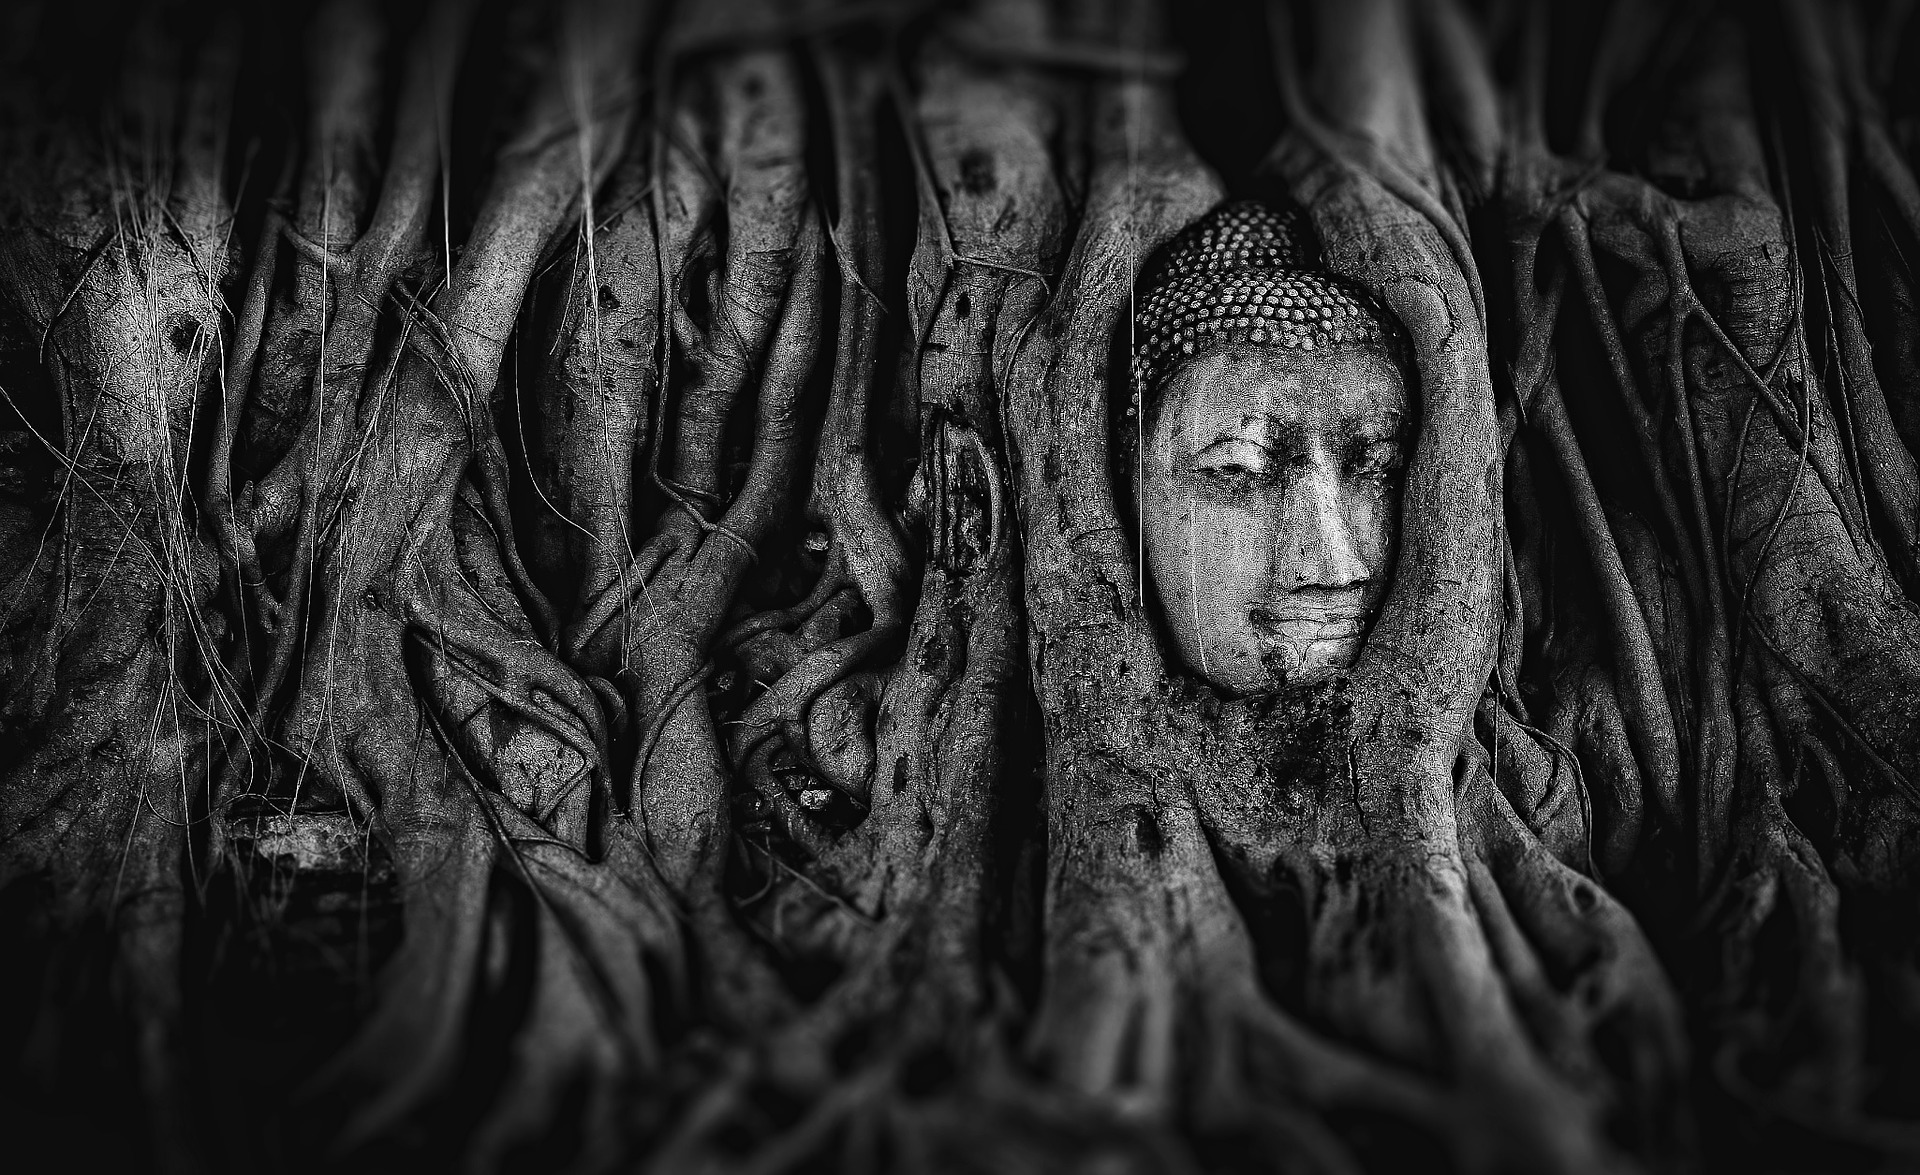 buddah face in a tree black and white photo